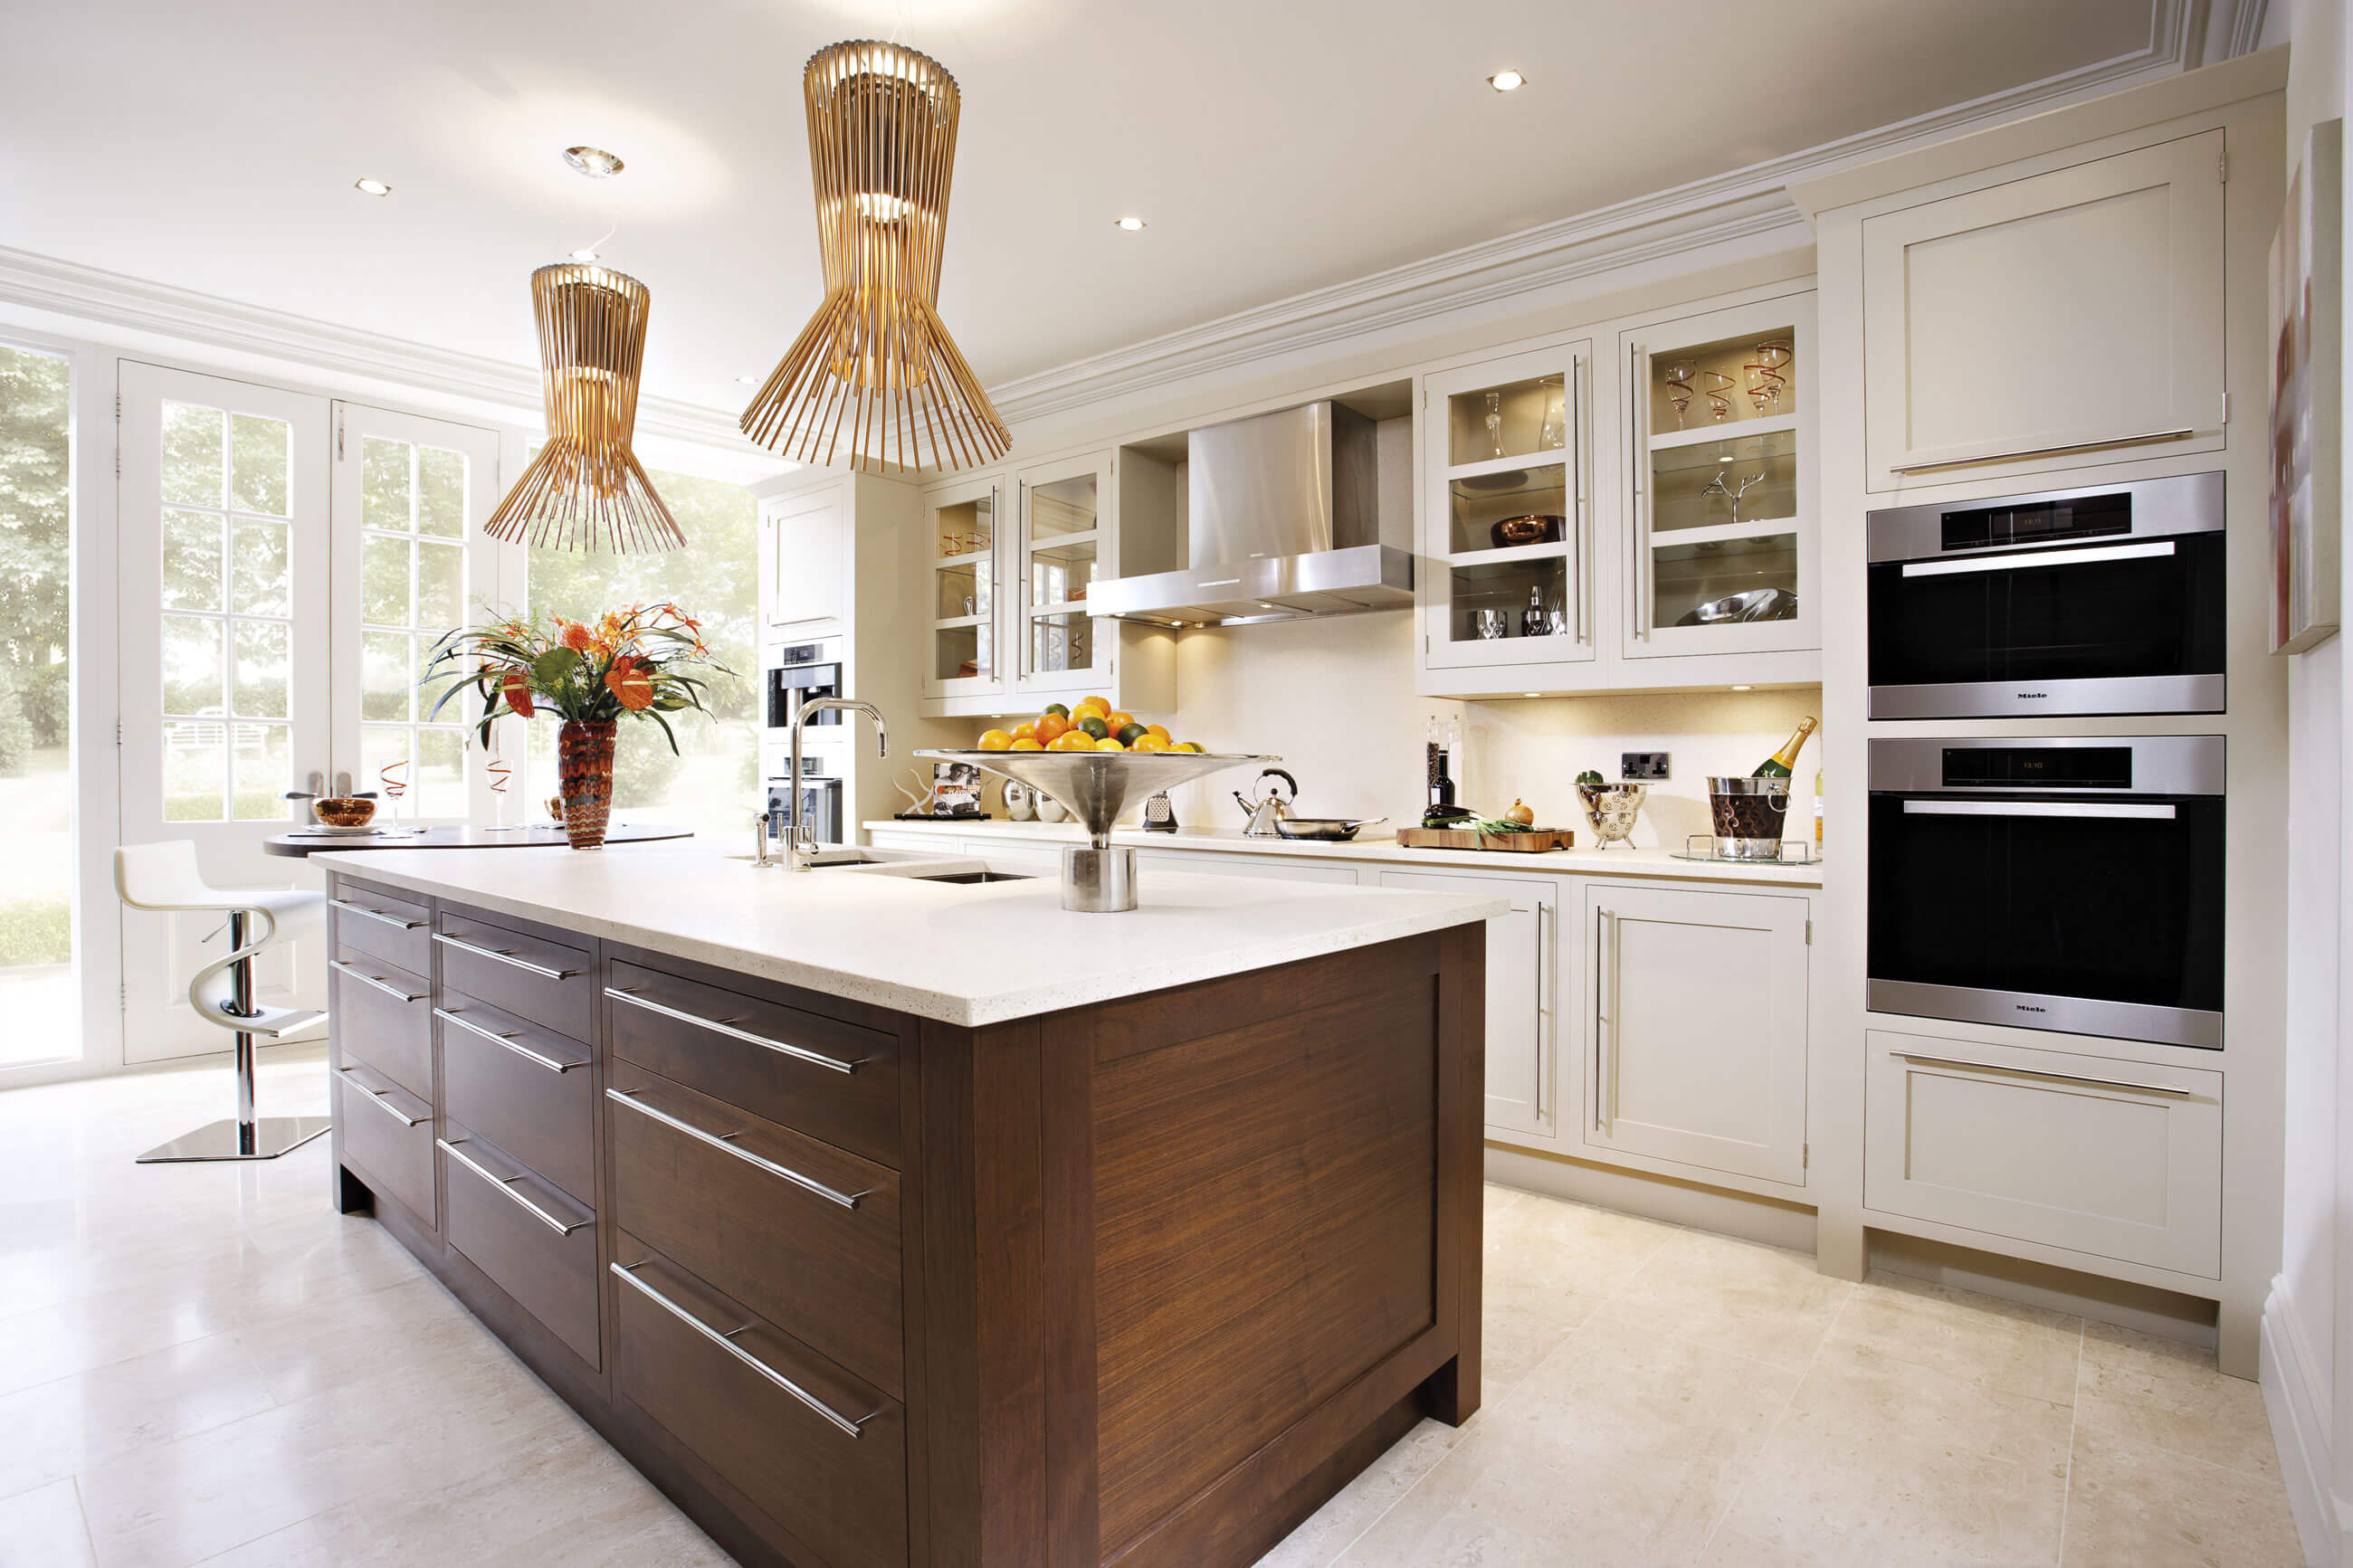 kitchen design walnut walnut kitchen tom howley 545